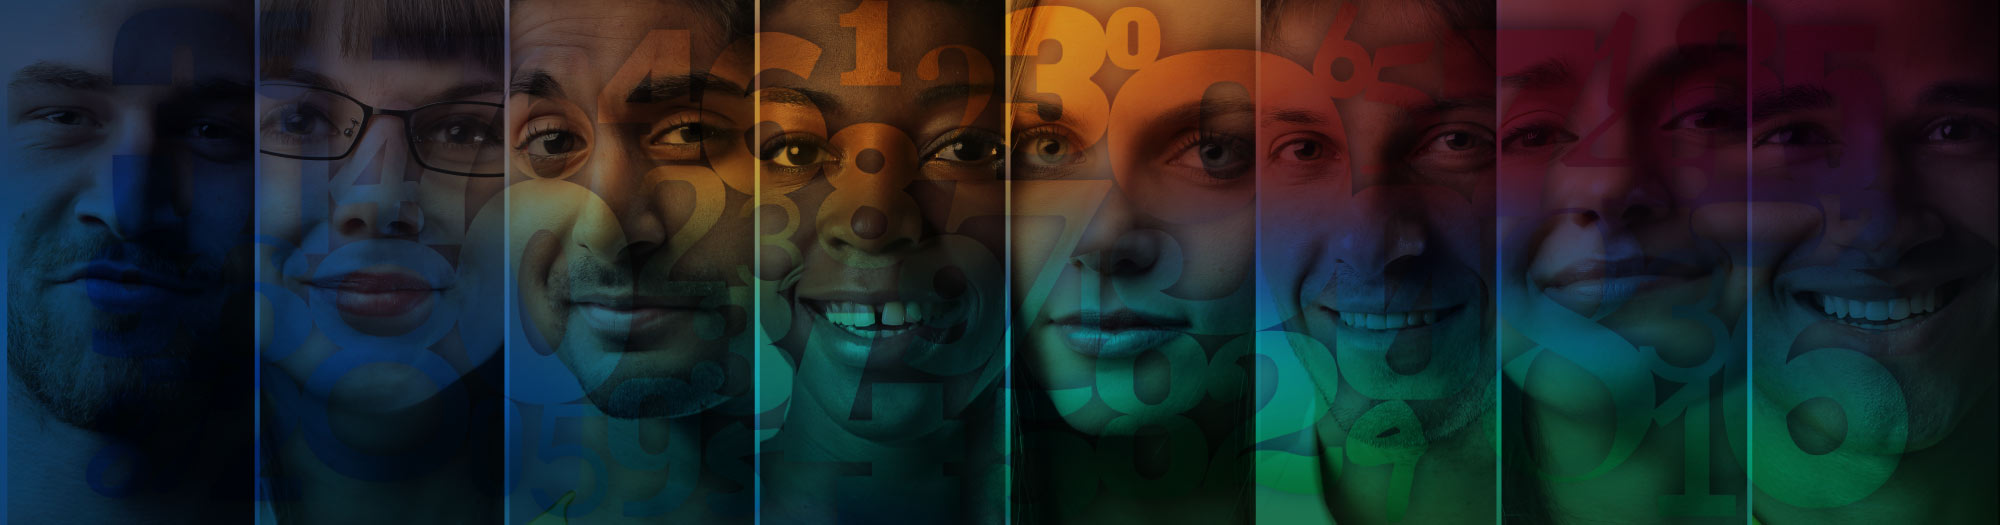 Men and women with numbers on their faces. More than a number. Stearns Bank treats you like family.